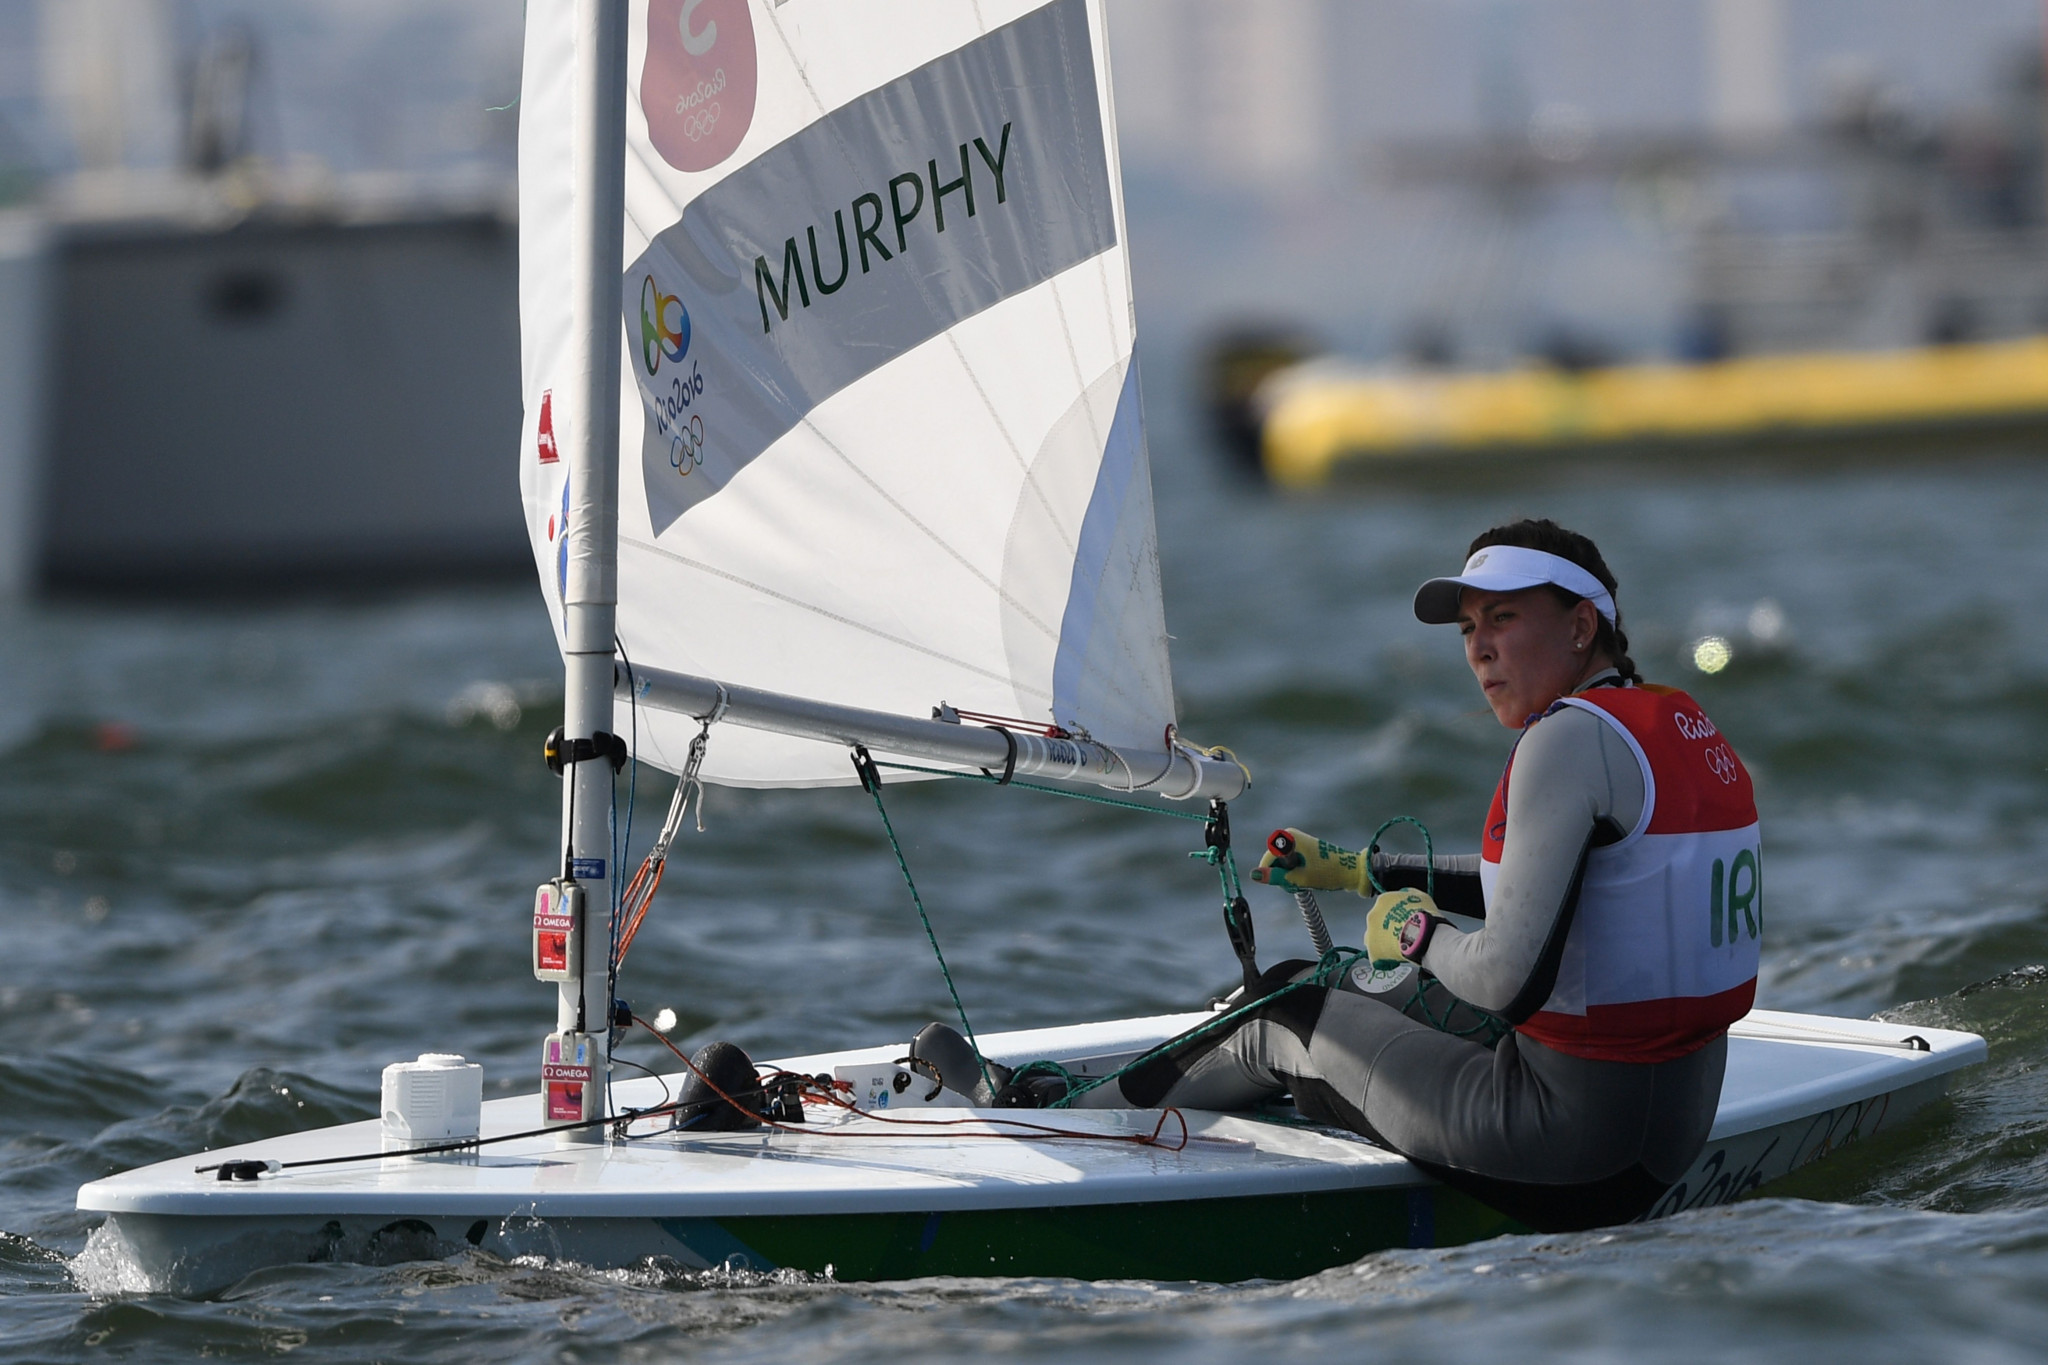 Olympic silver medallist Annalise Murphy will be among 13 Irish sailors based at the new HQ in Dún Laoghaire ©Getty Images